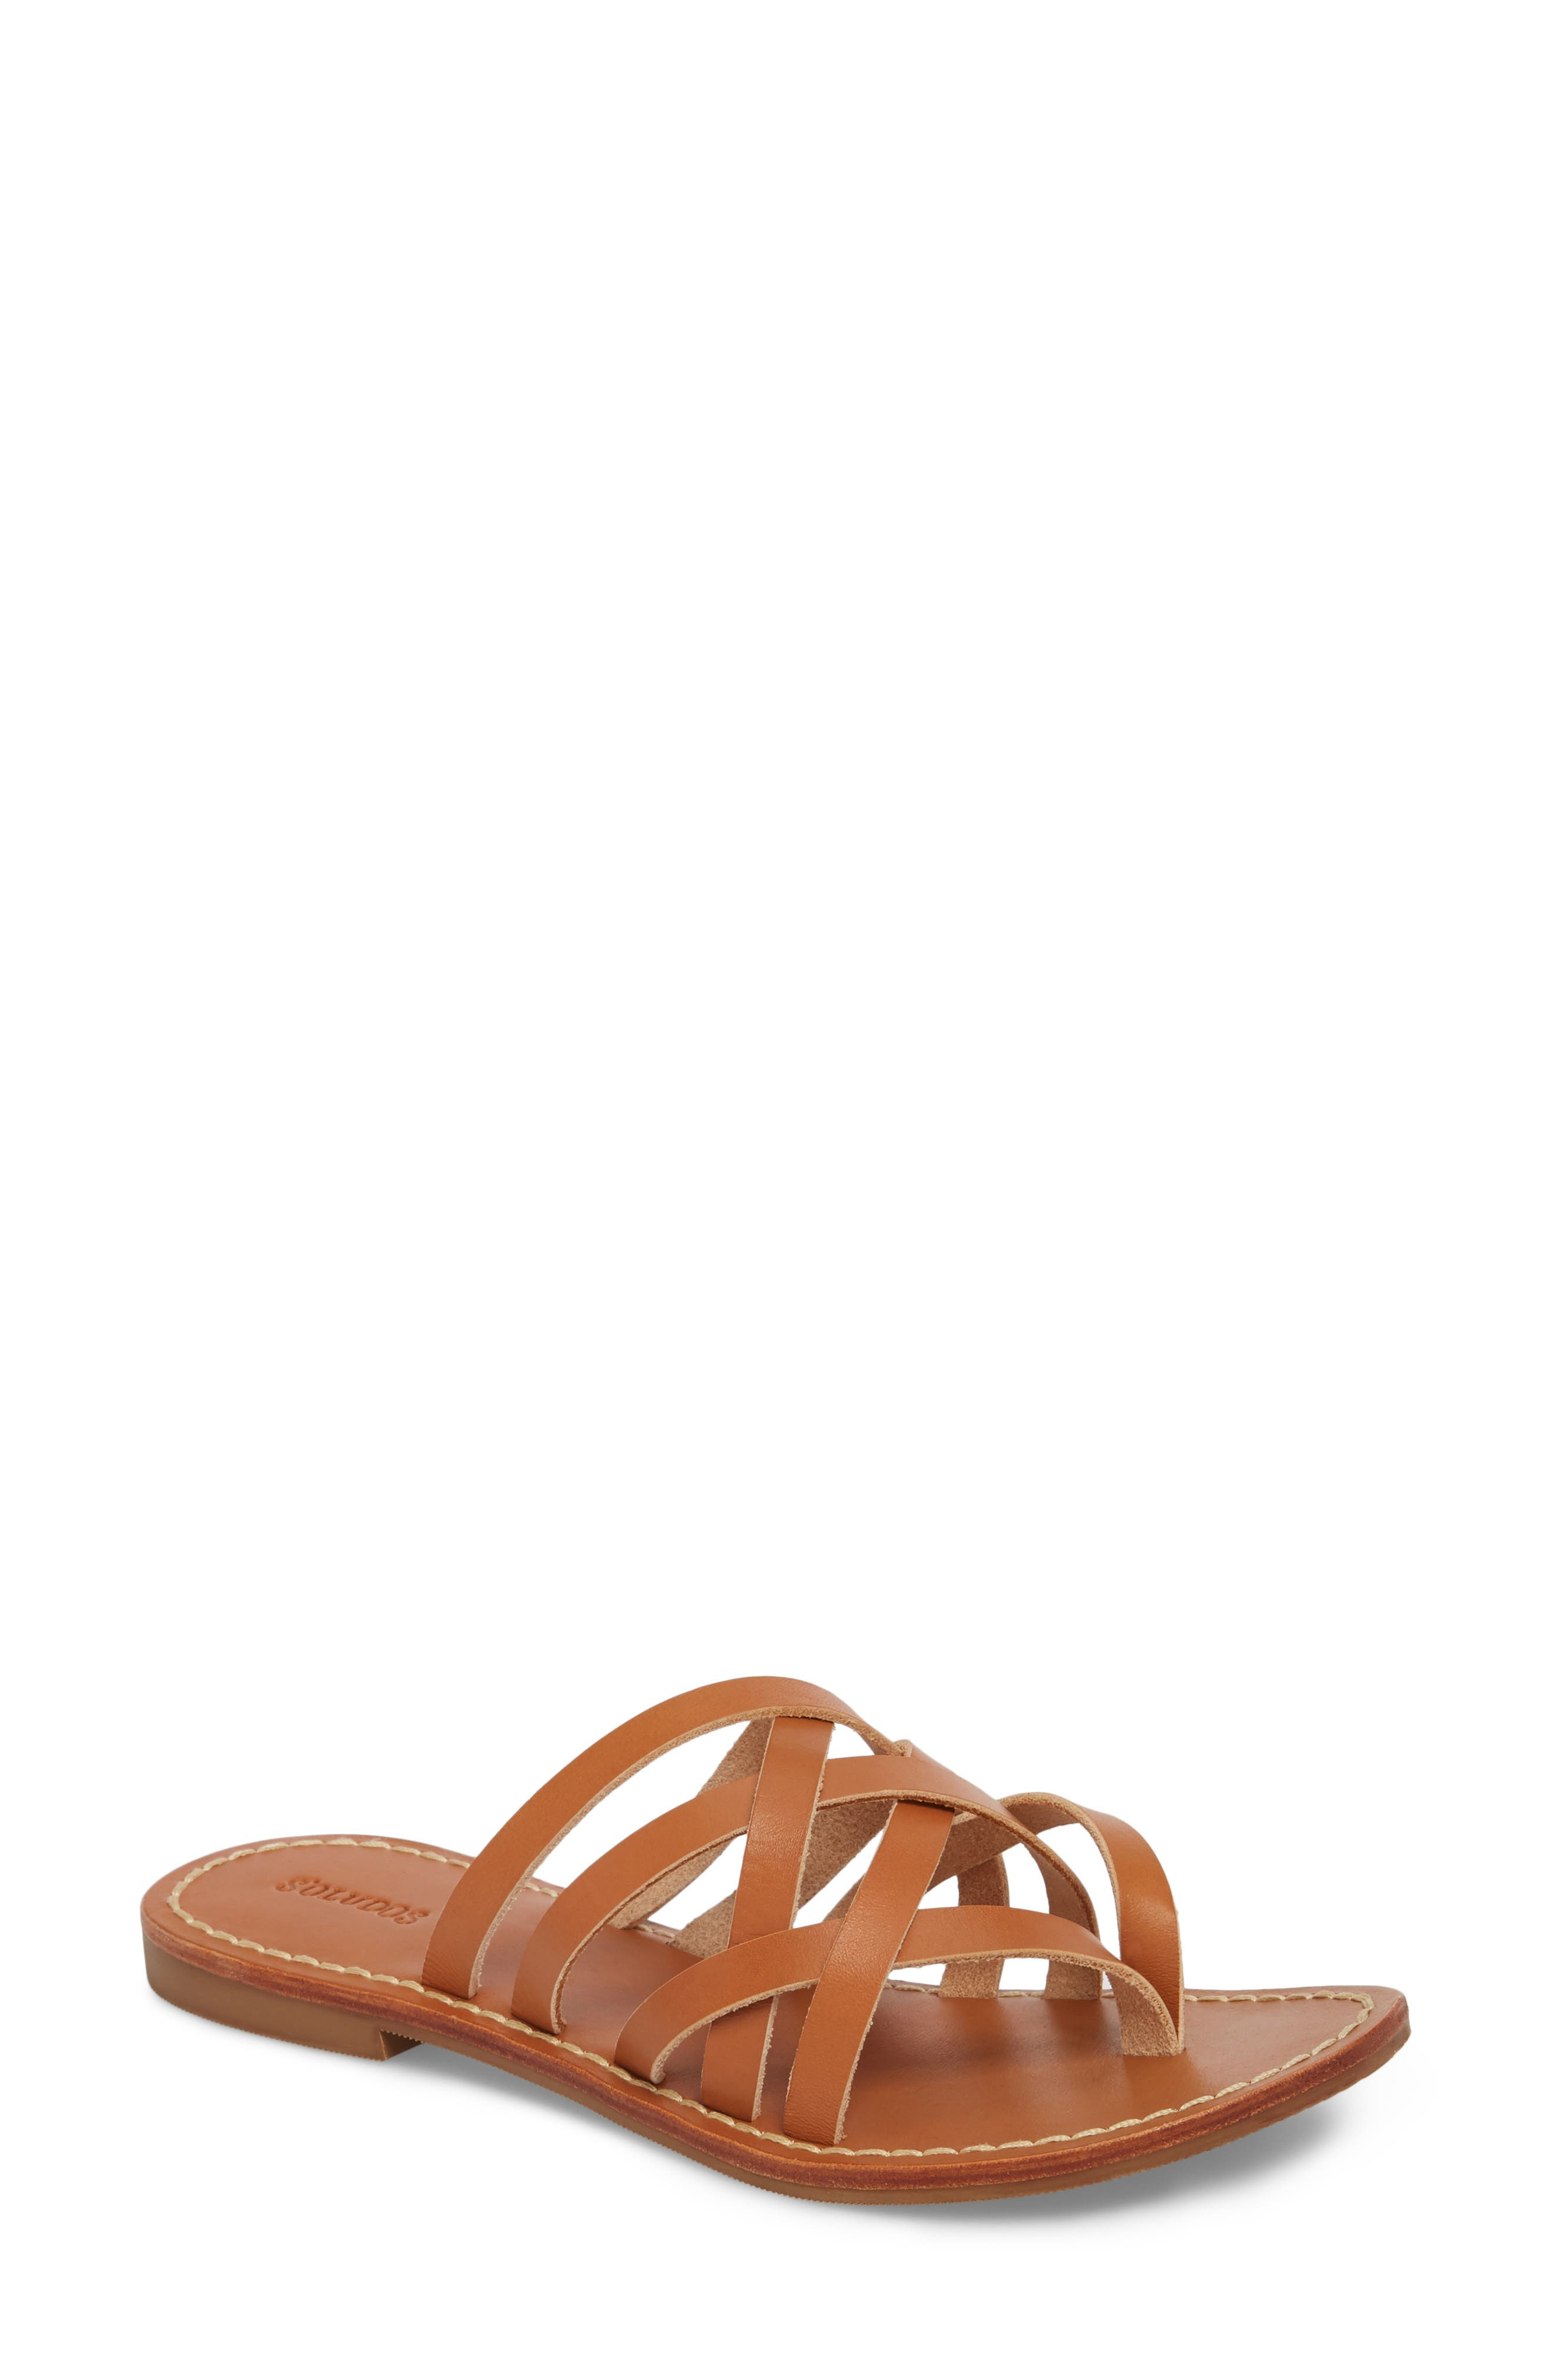 Strappy Sandal,                         Main,                         color, Natural Leather